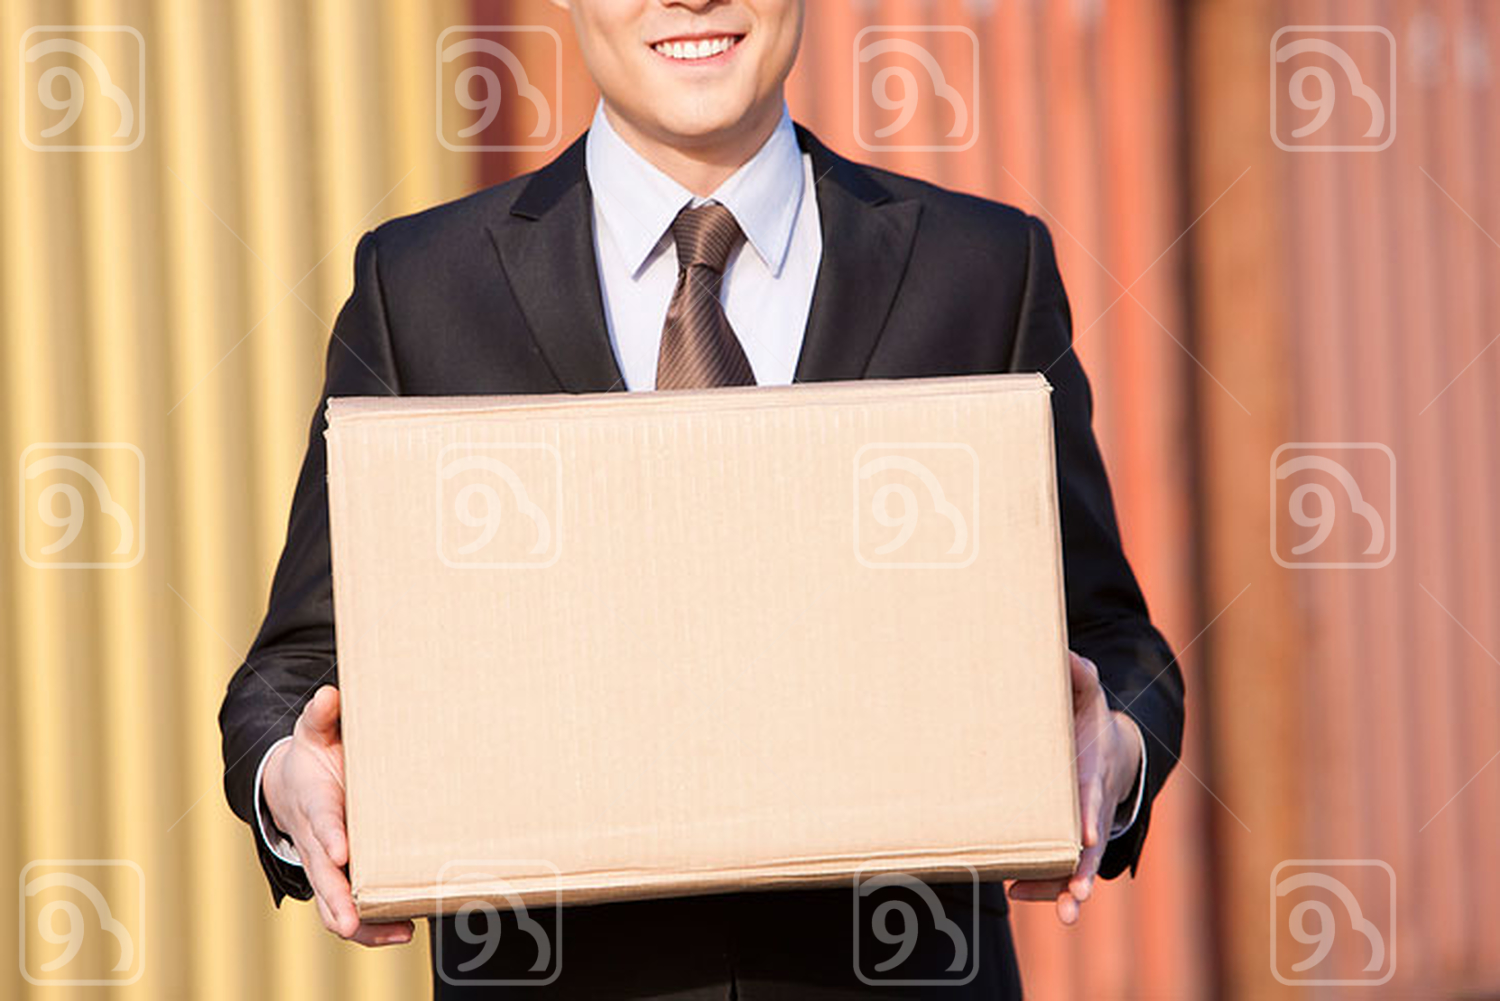 Chinese businessman carrying a cardboard box with cargo containers in the background